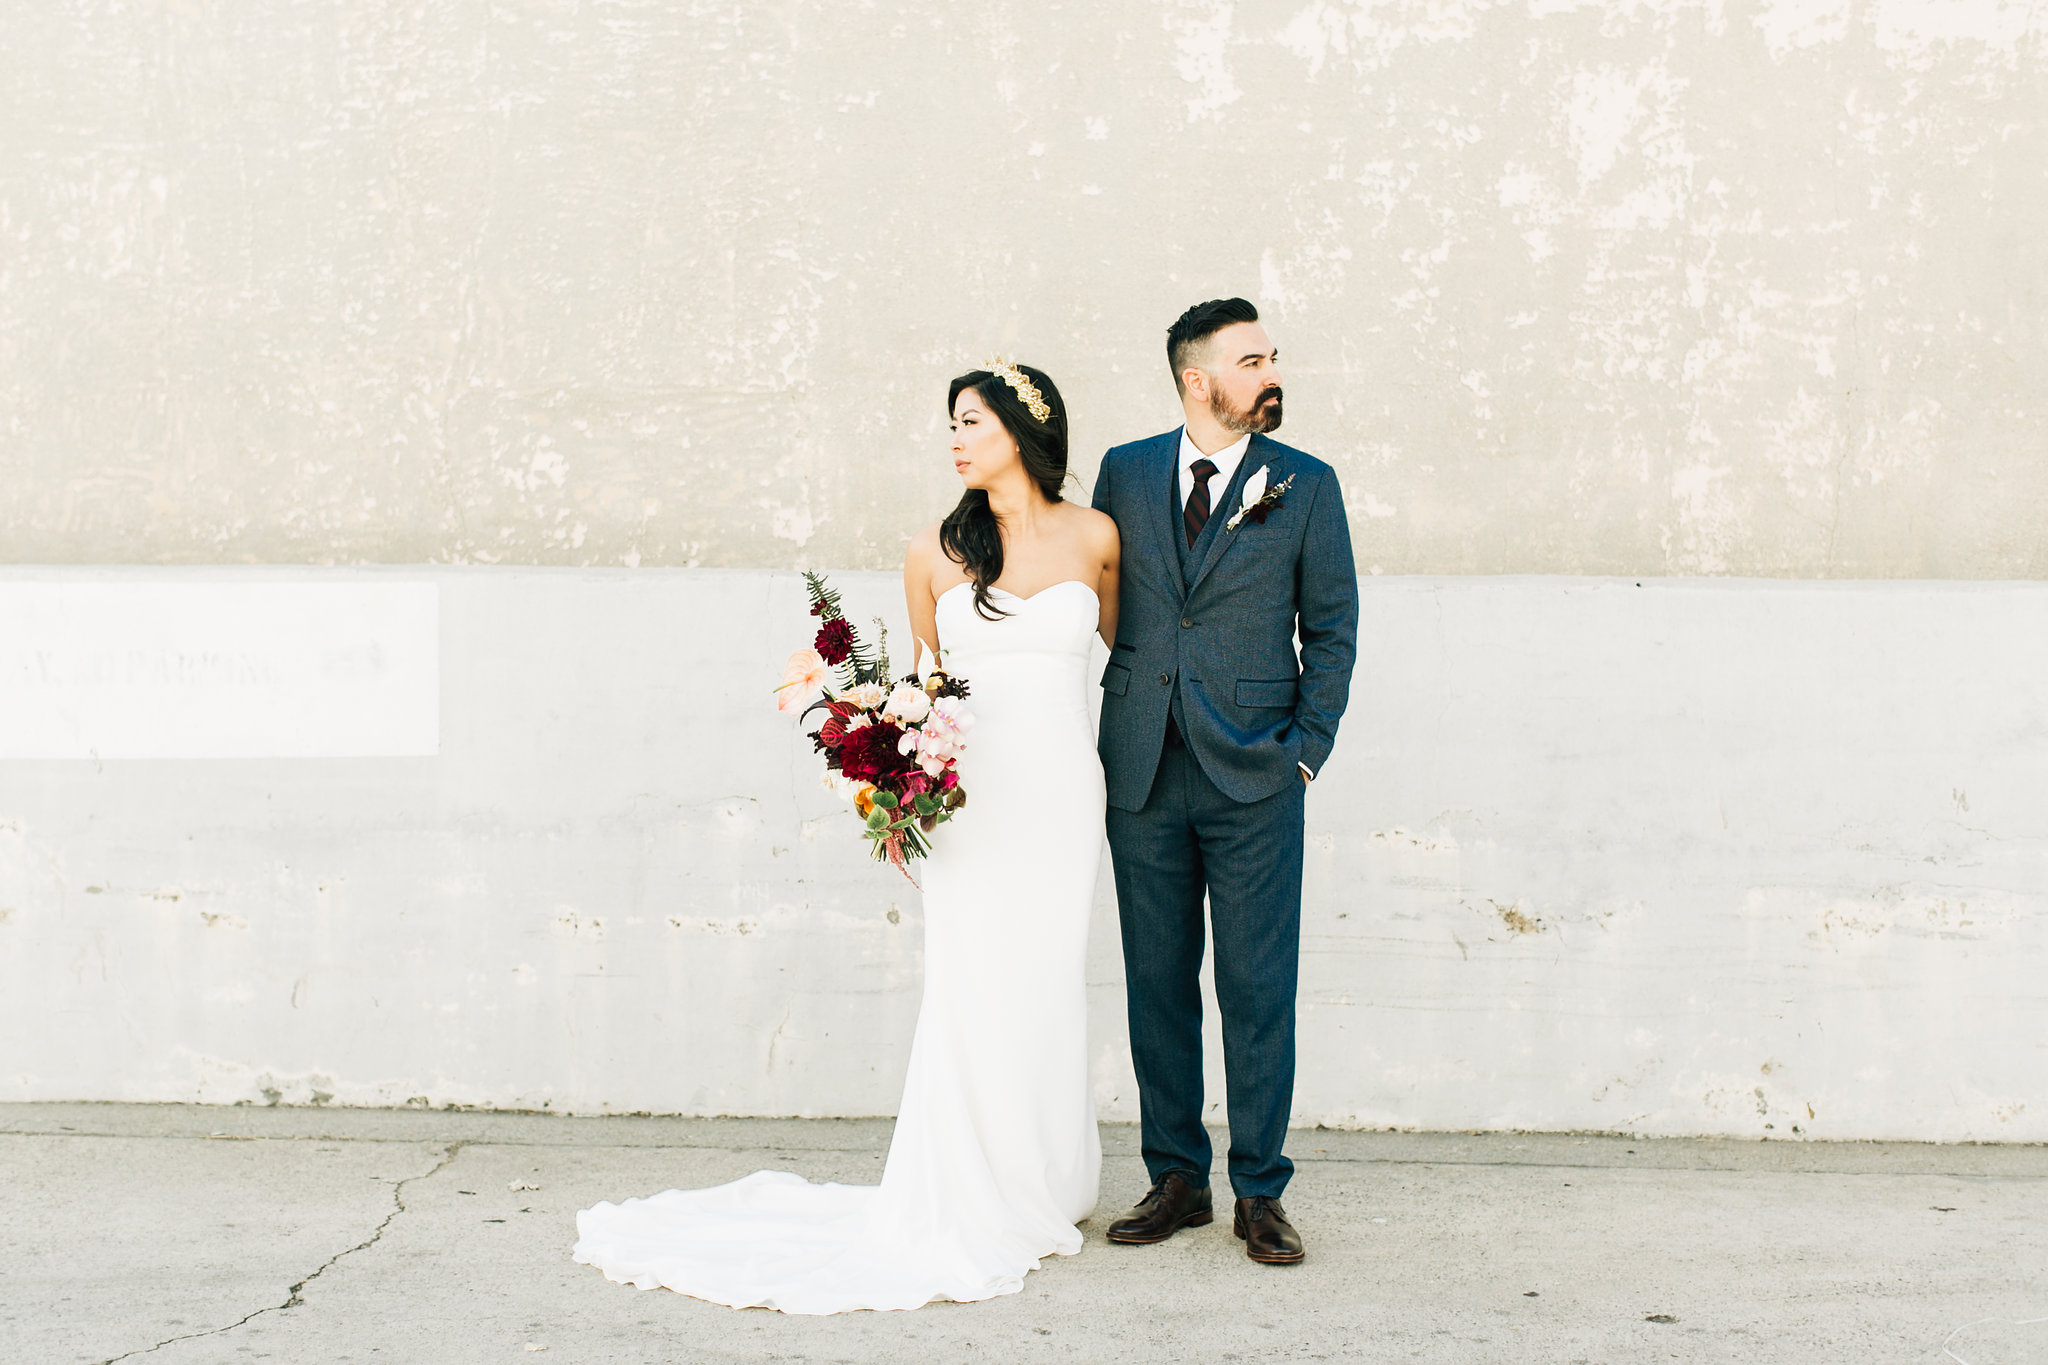 Jena-Lady-Modern Wedding at Madera Kitchen